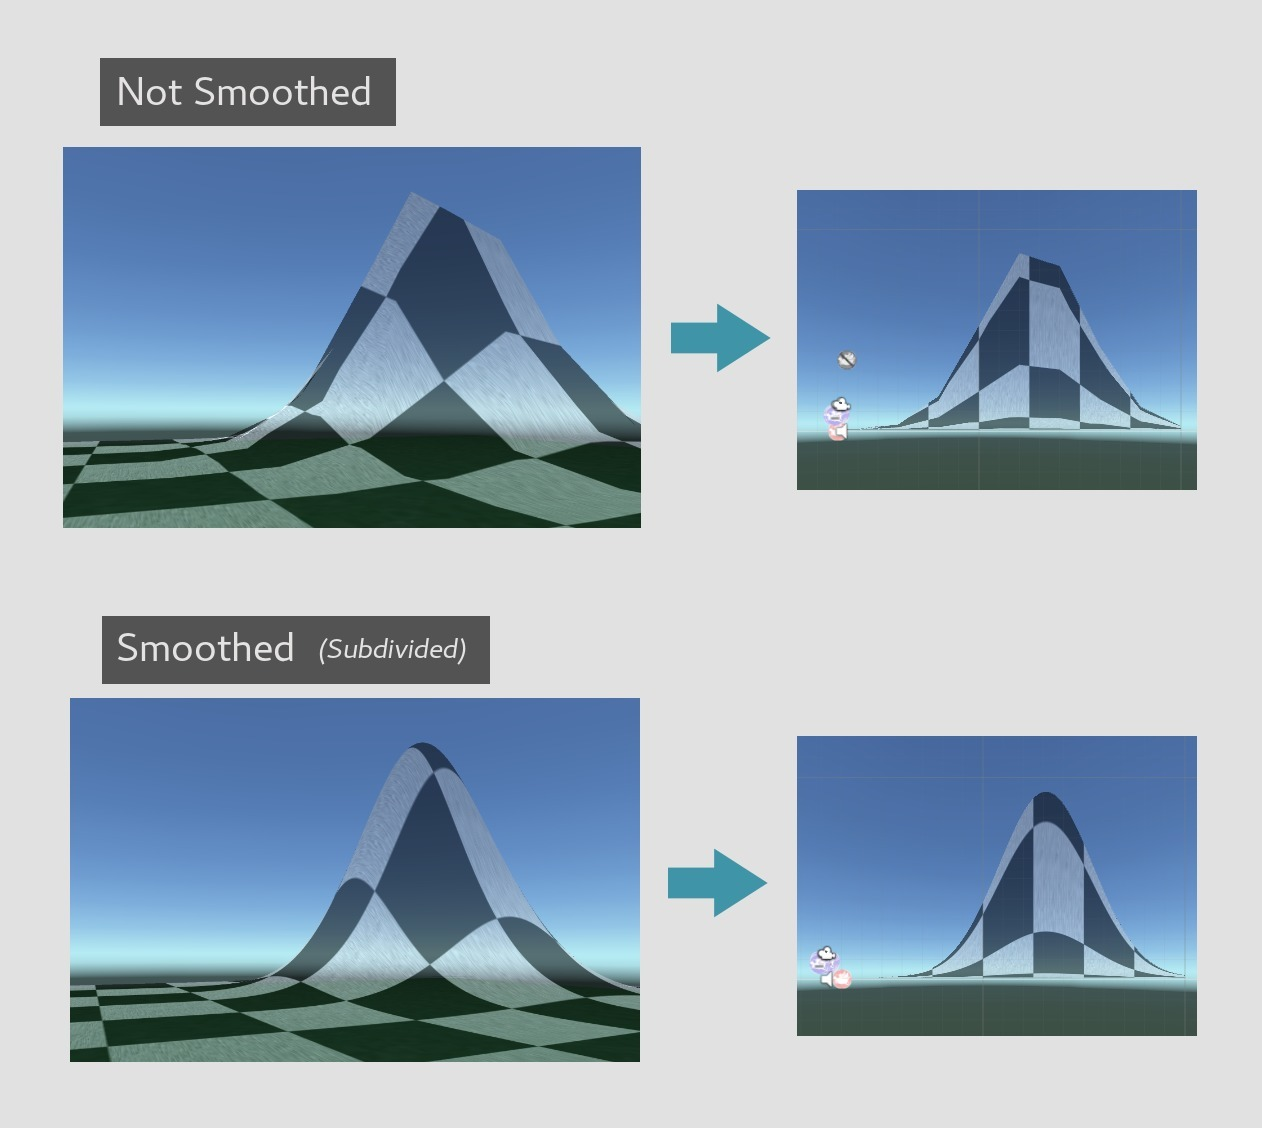 Non-Smoothed vs Smoothed Mesh Comparison